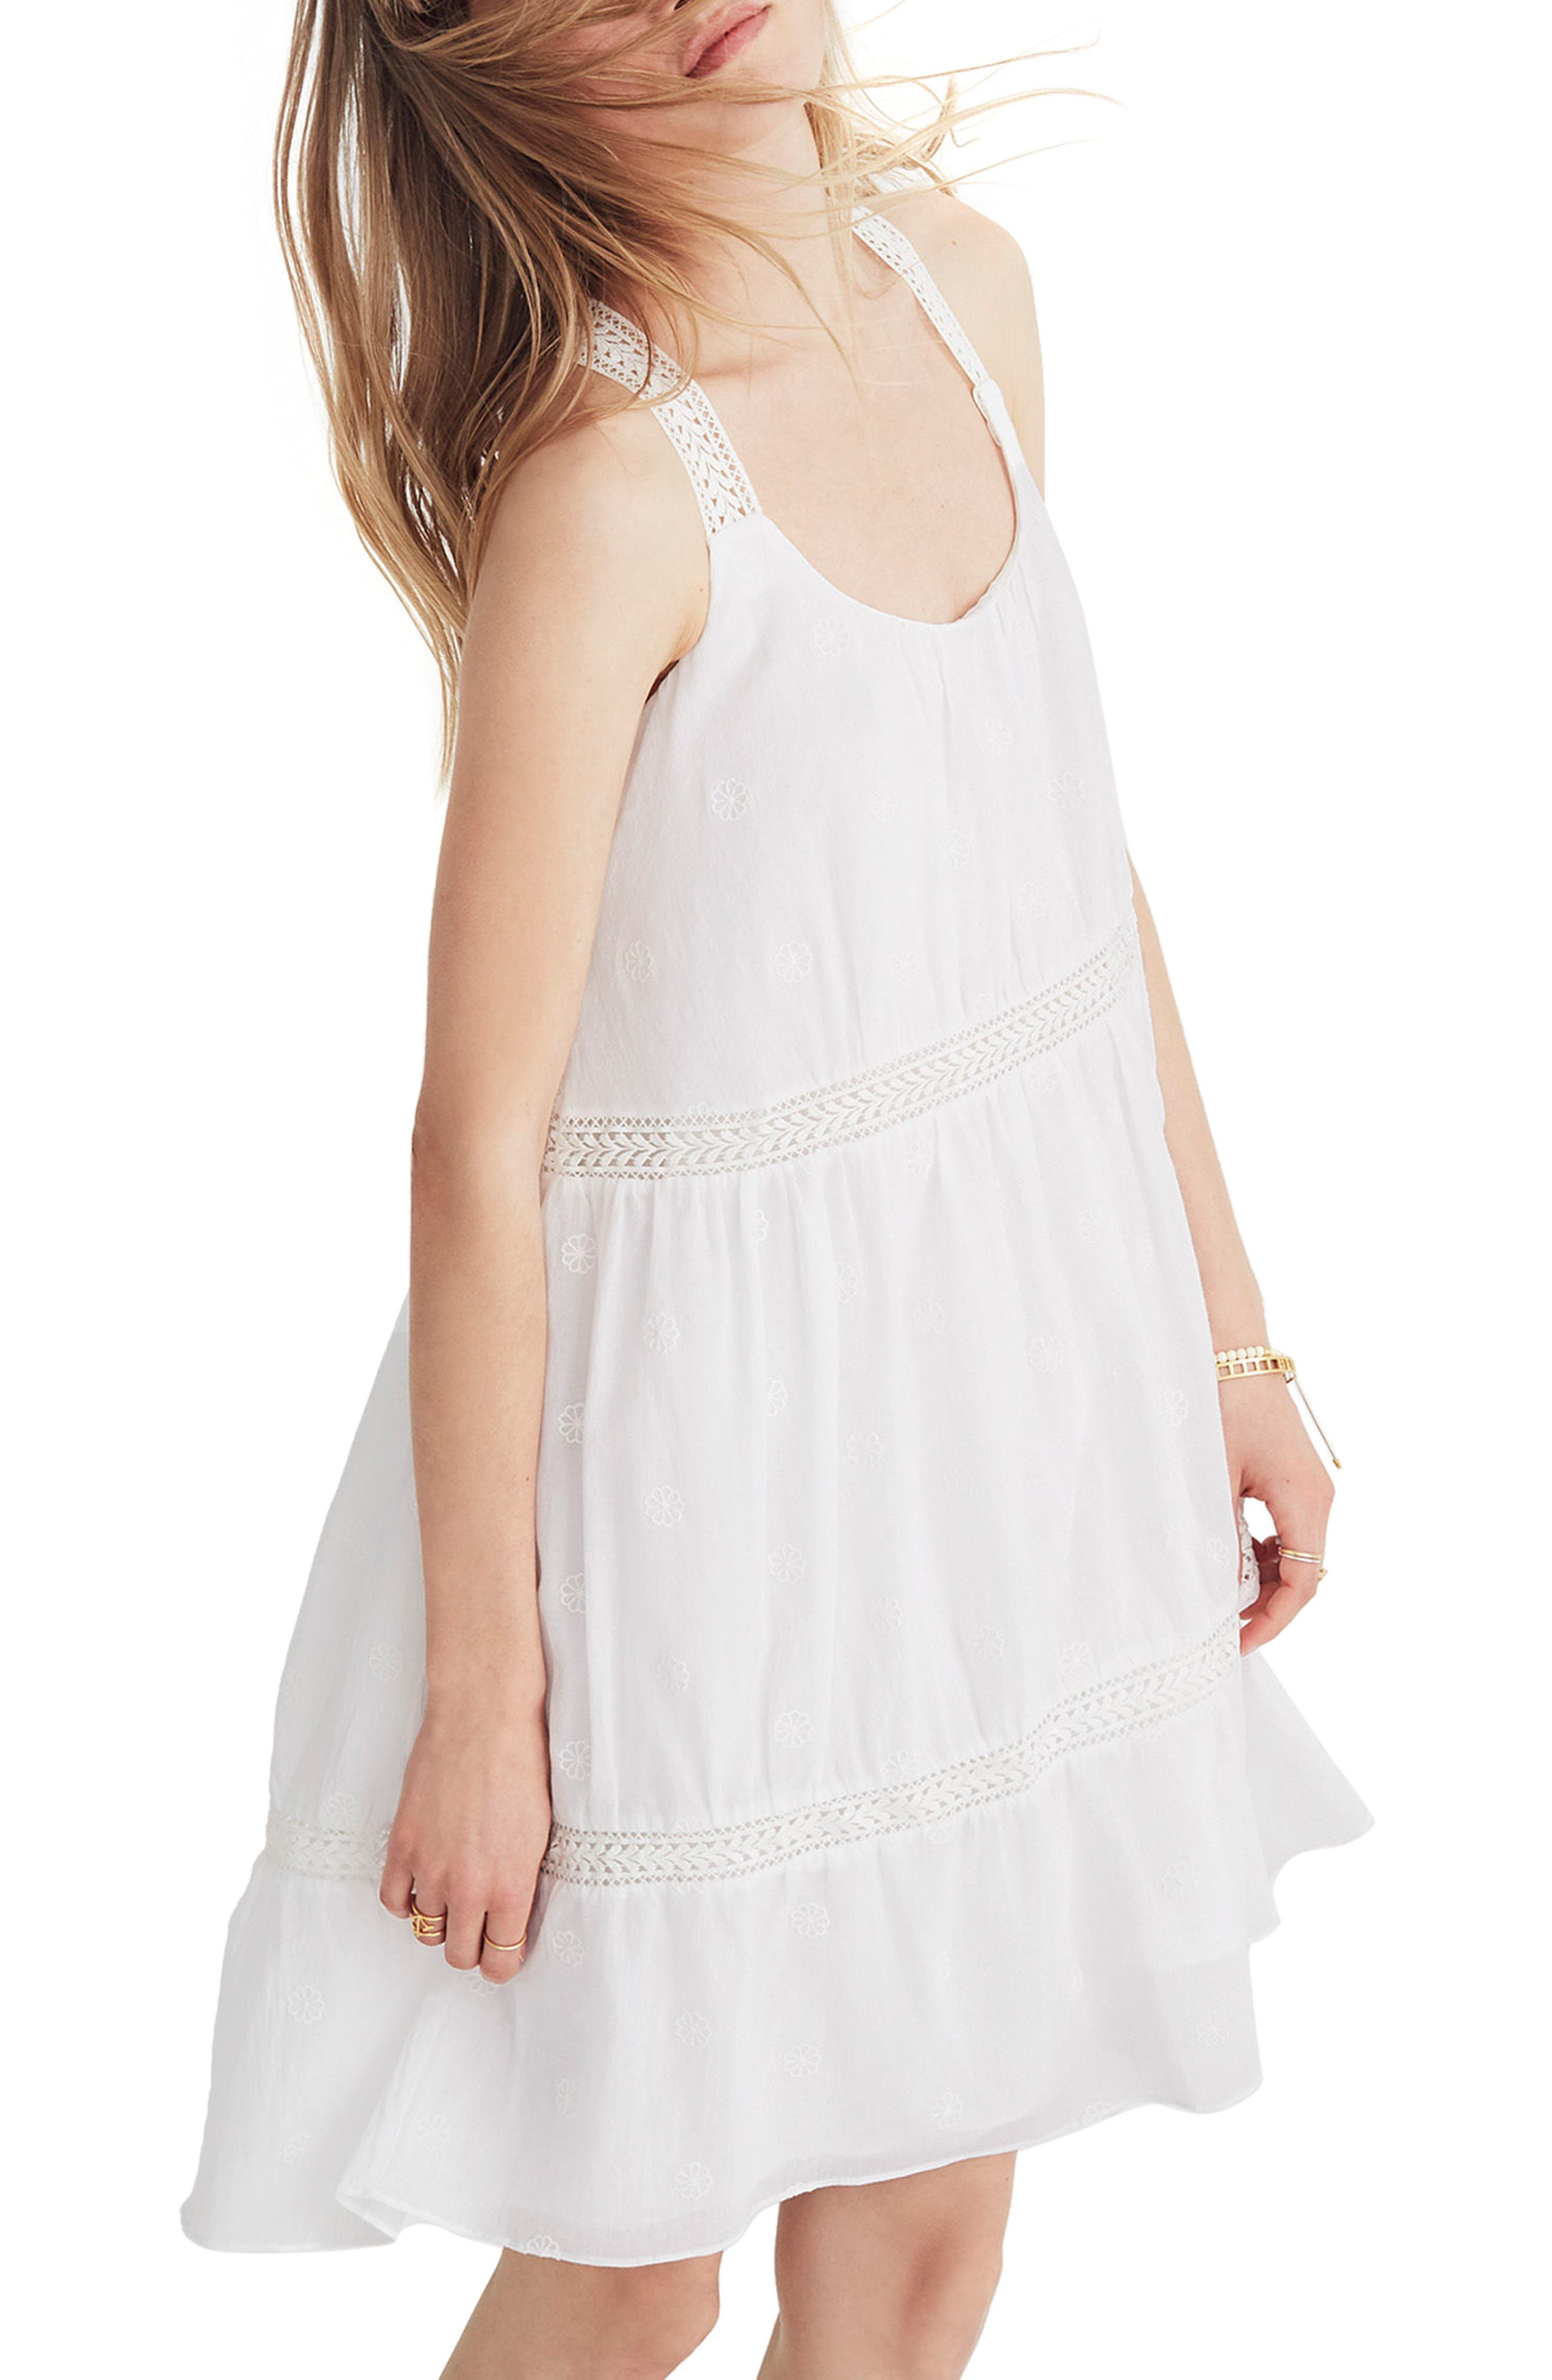 Embroidered Honeysuckle Dress,                         Main,                         color, 100